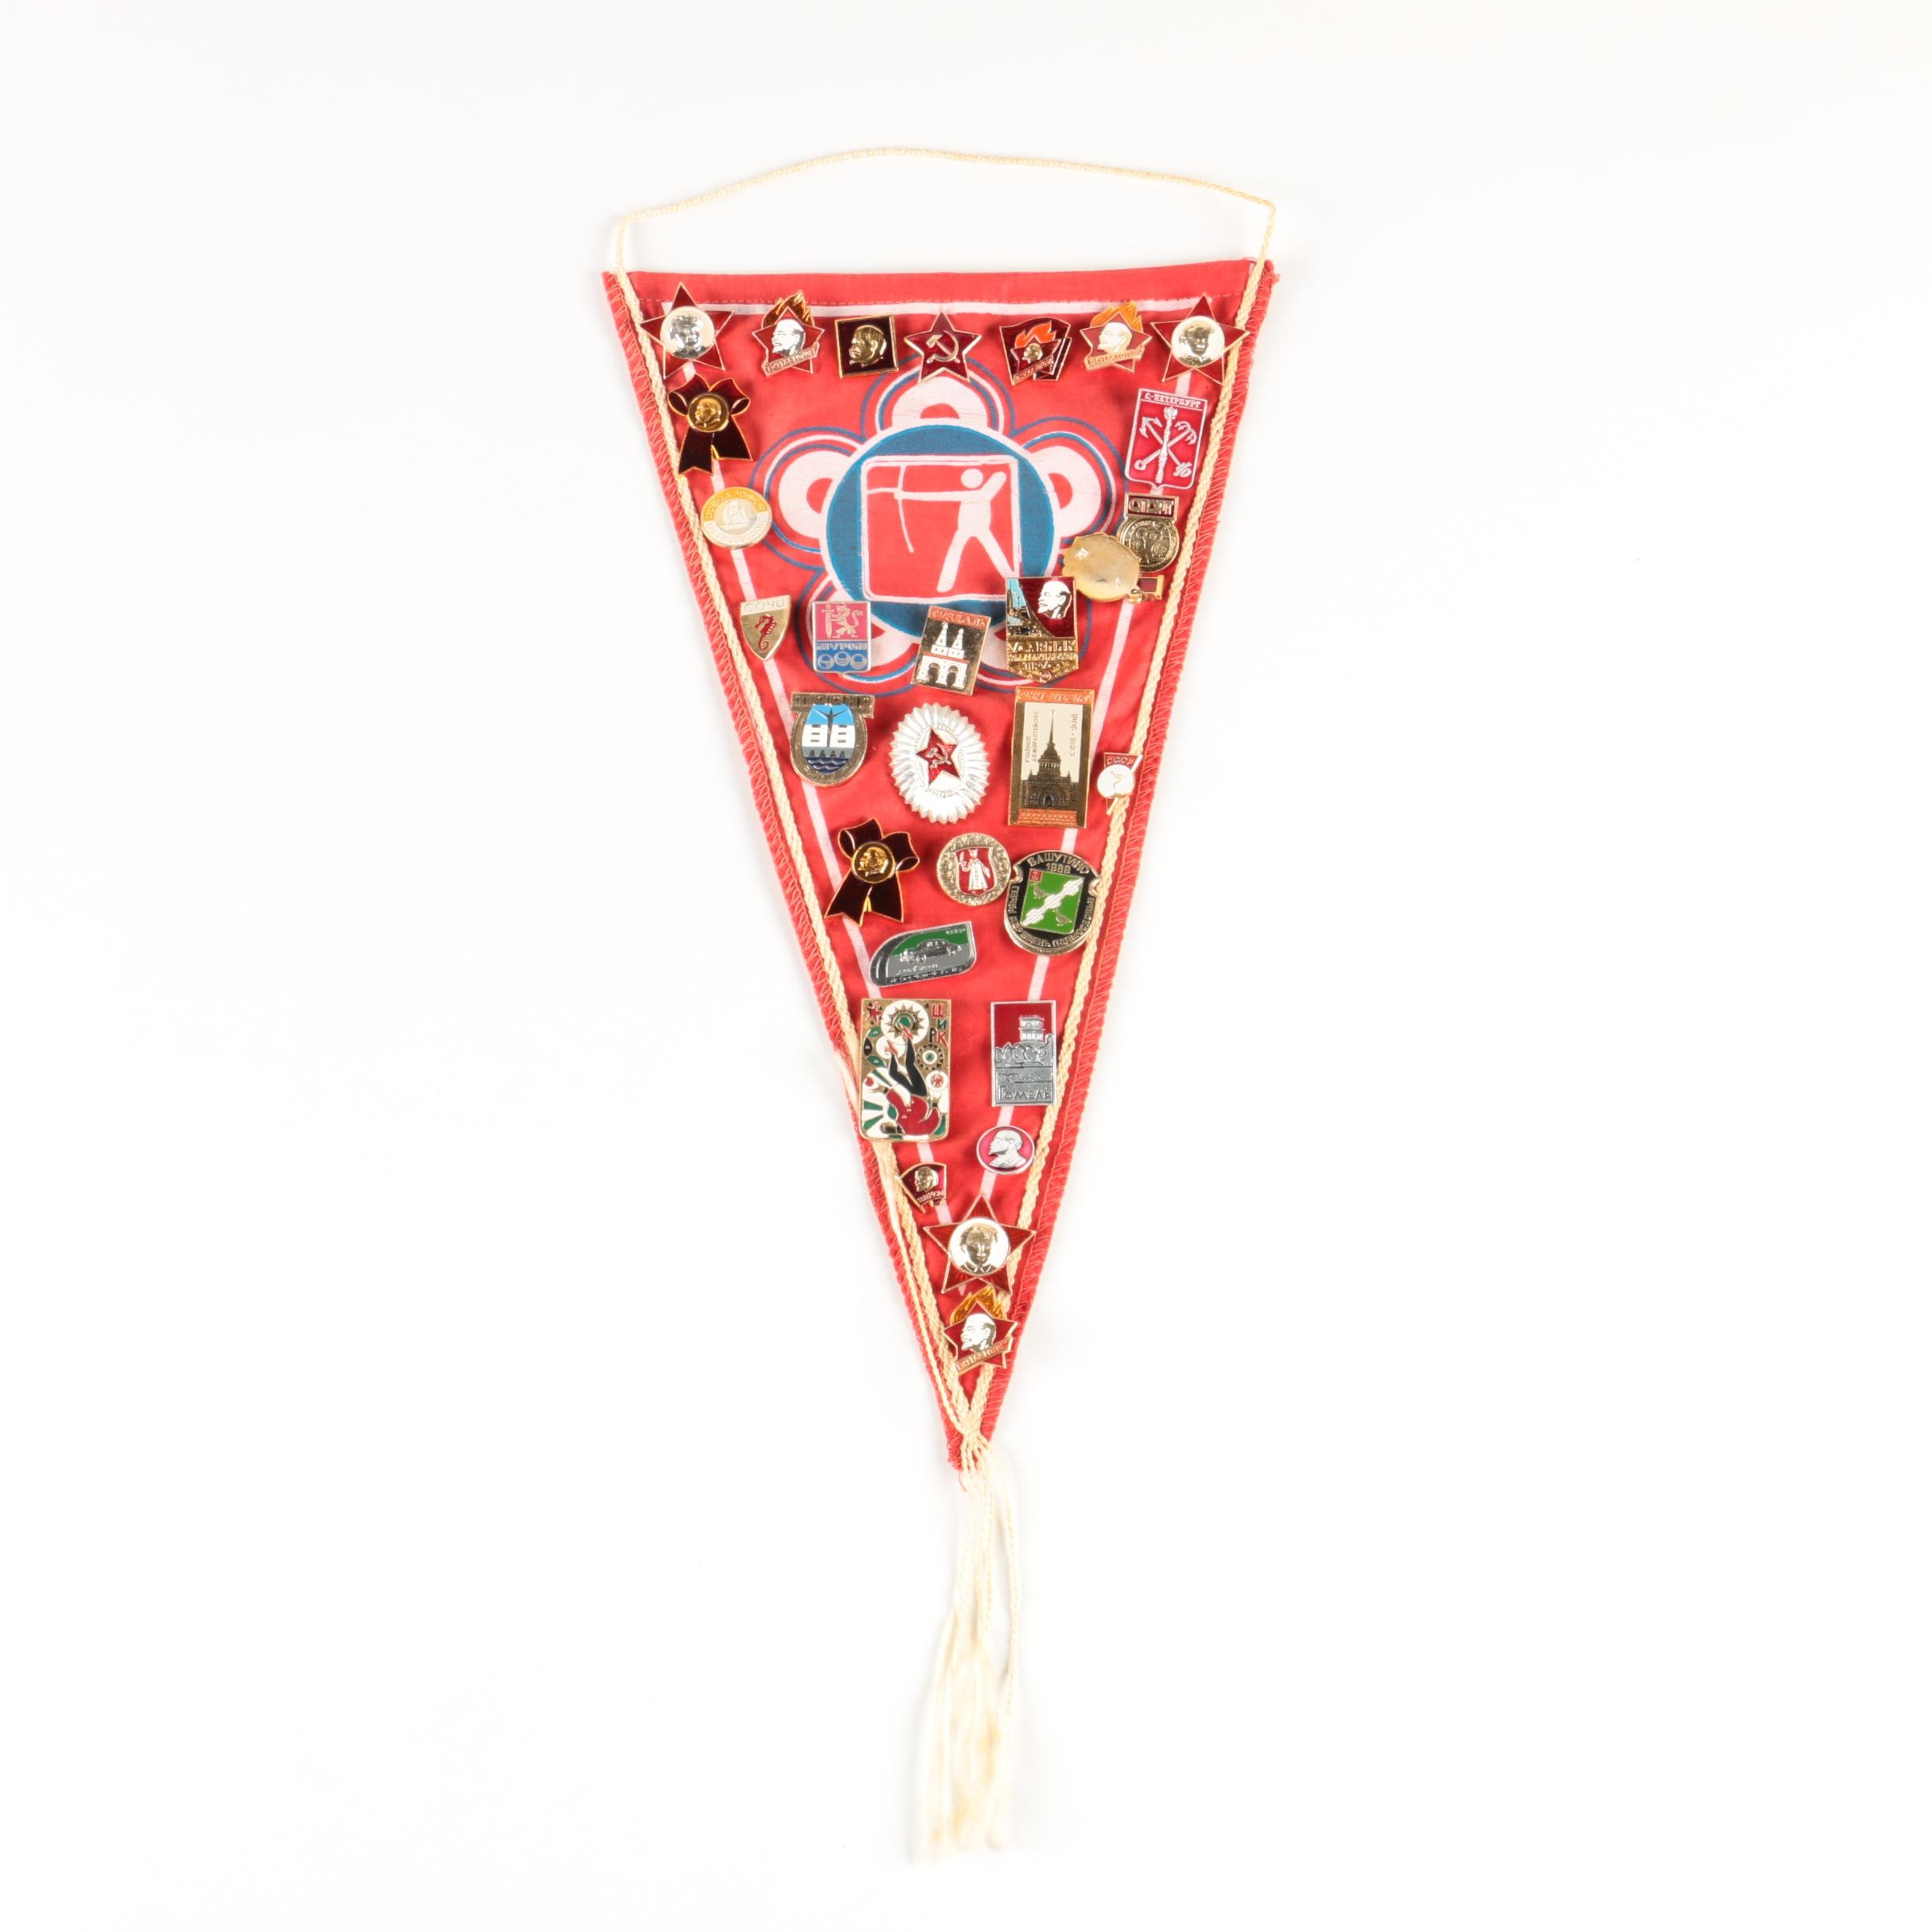 Soviet Russian Pin-Backs Displayed on Archery Pennant